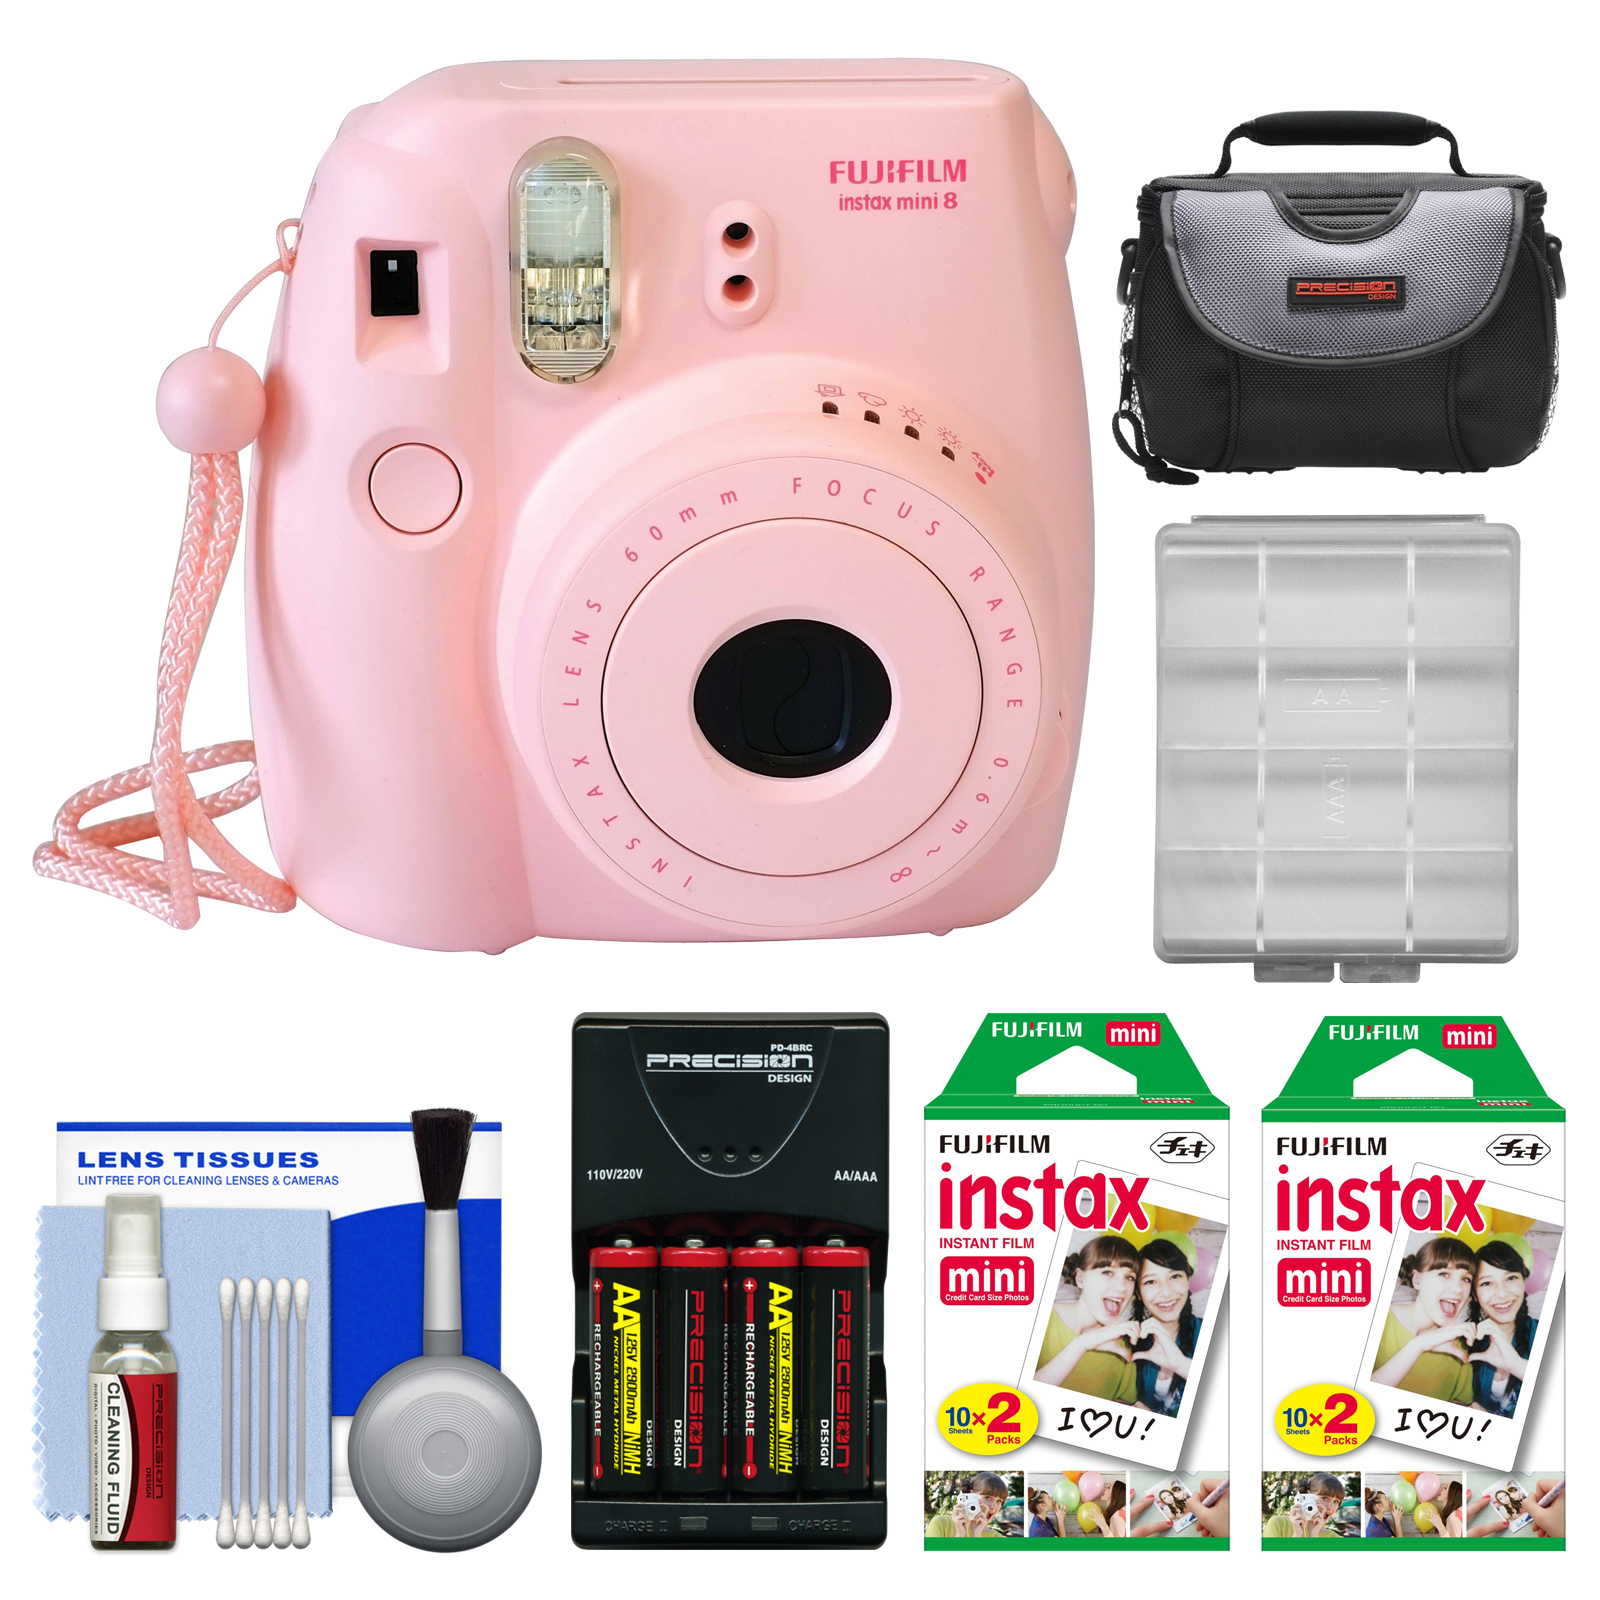 Fujifilm Instax Mini 8 Instant Film Camera (Pink) with 40 Instant Film + Case + Batteries & Charger + Kit